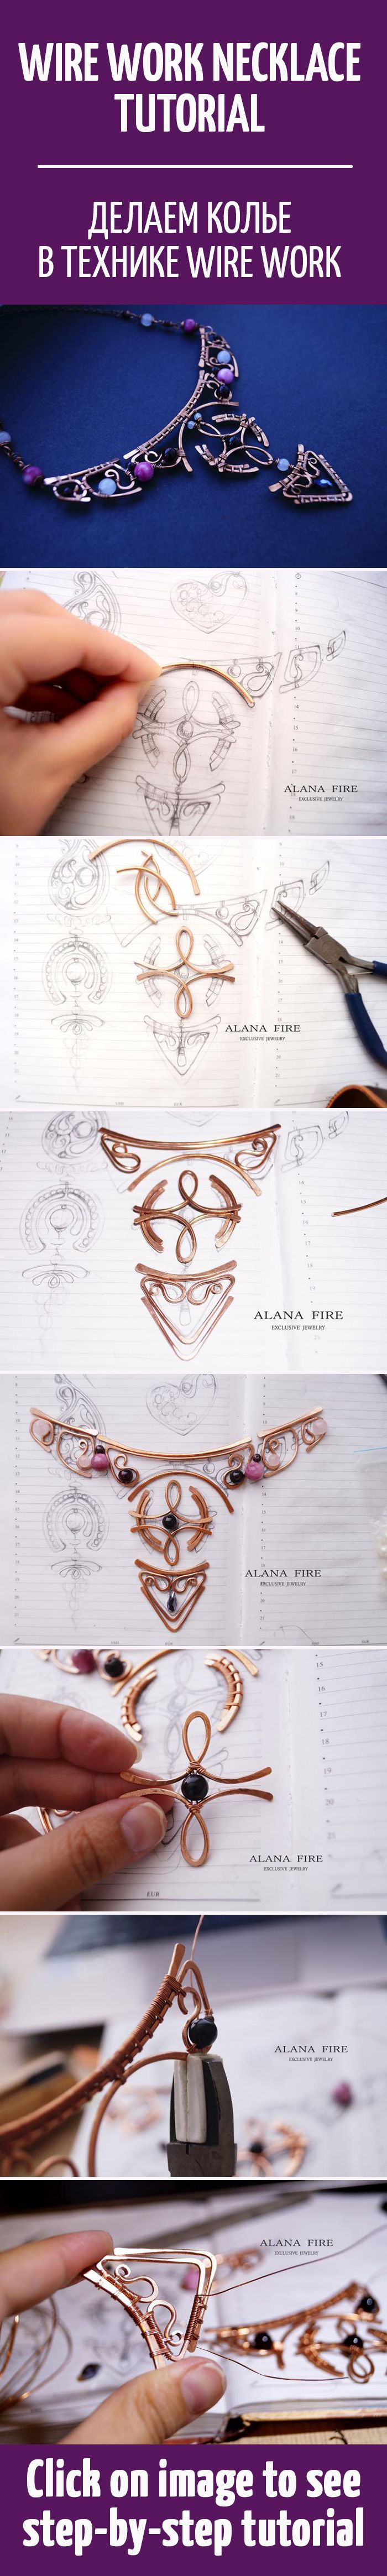 214 best Wire Necklace images on Pinterest